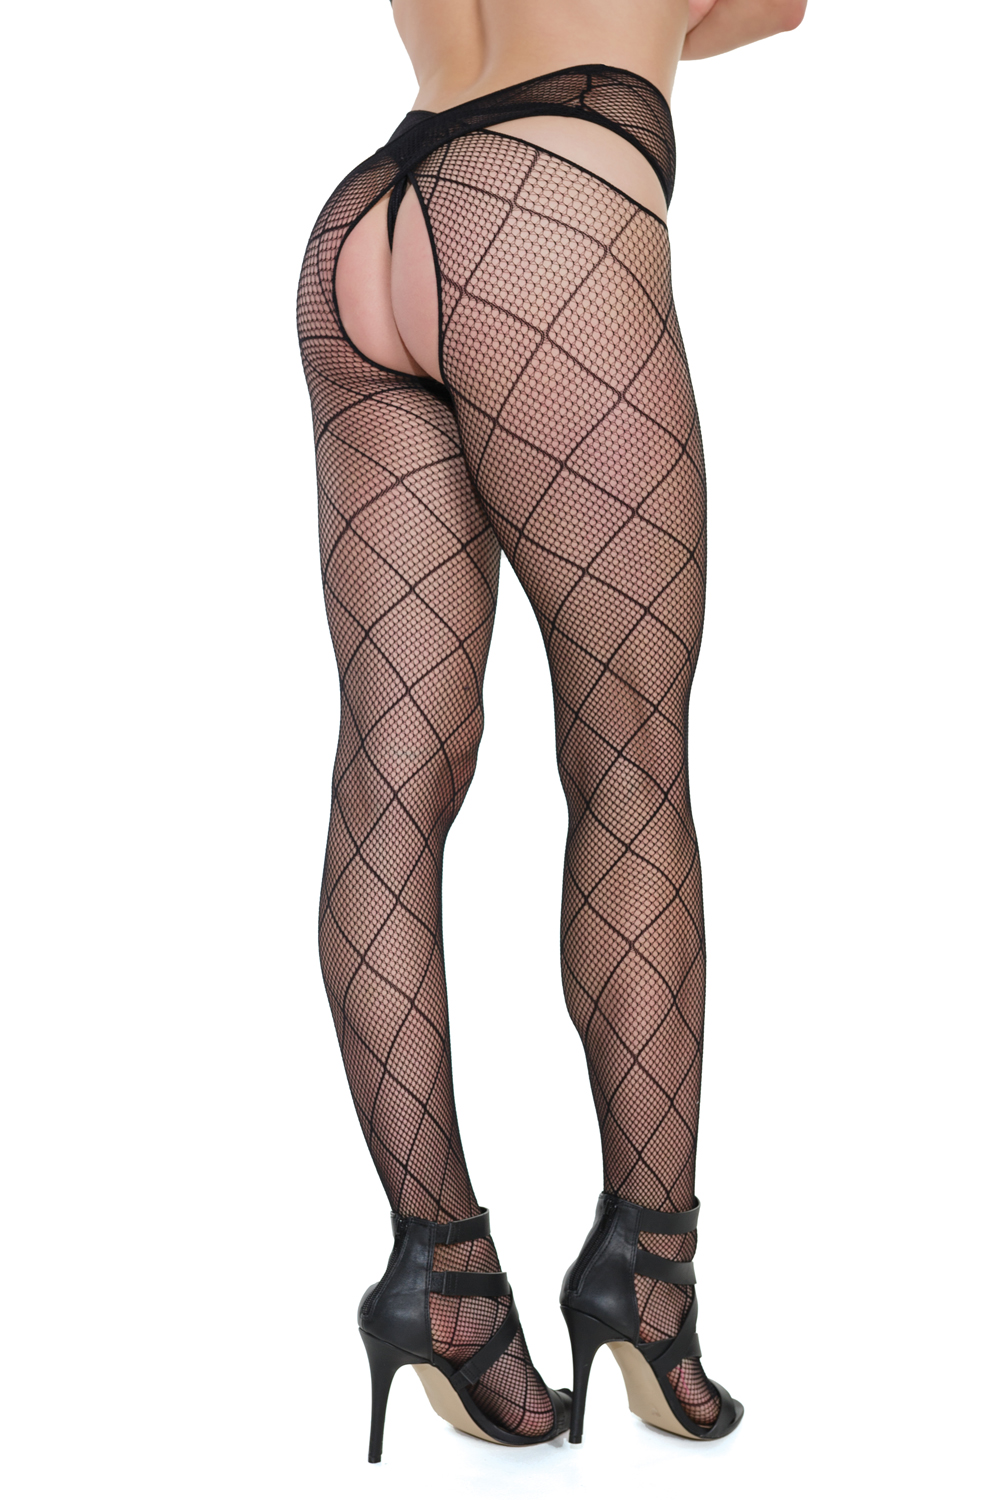 Seamless diamond net stockings criss-cross waist design 7259 Edmonton